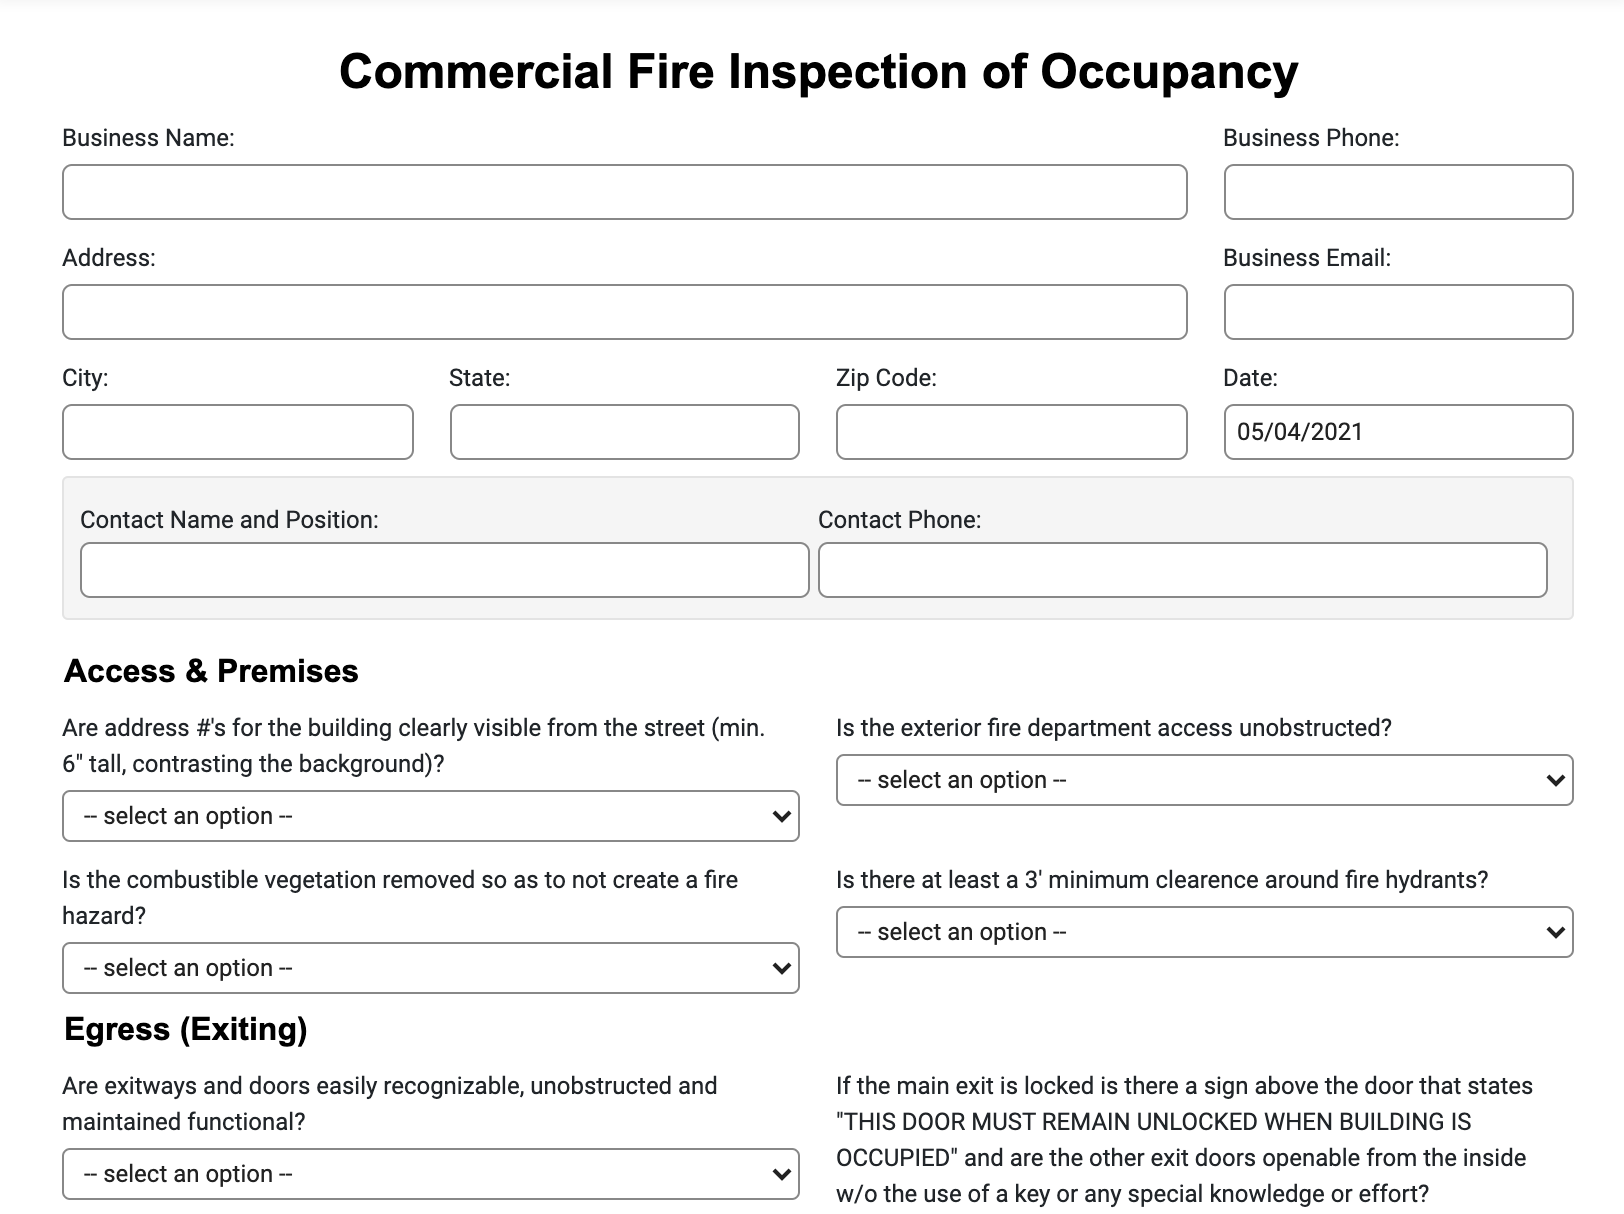 fire inspection of occupancy form